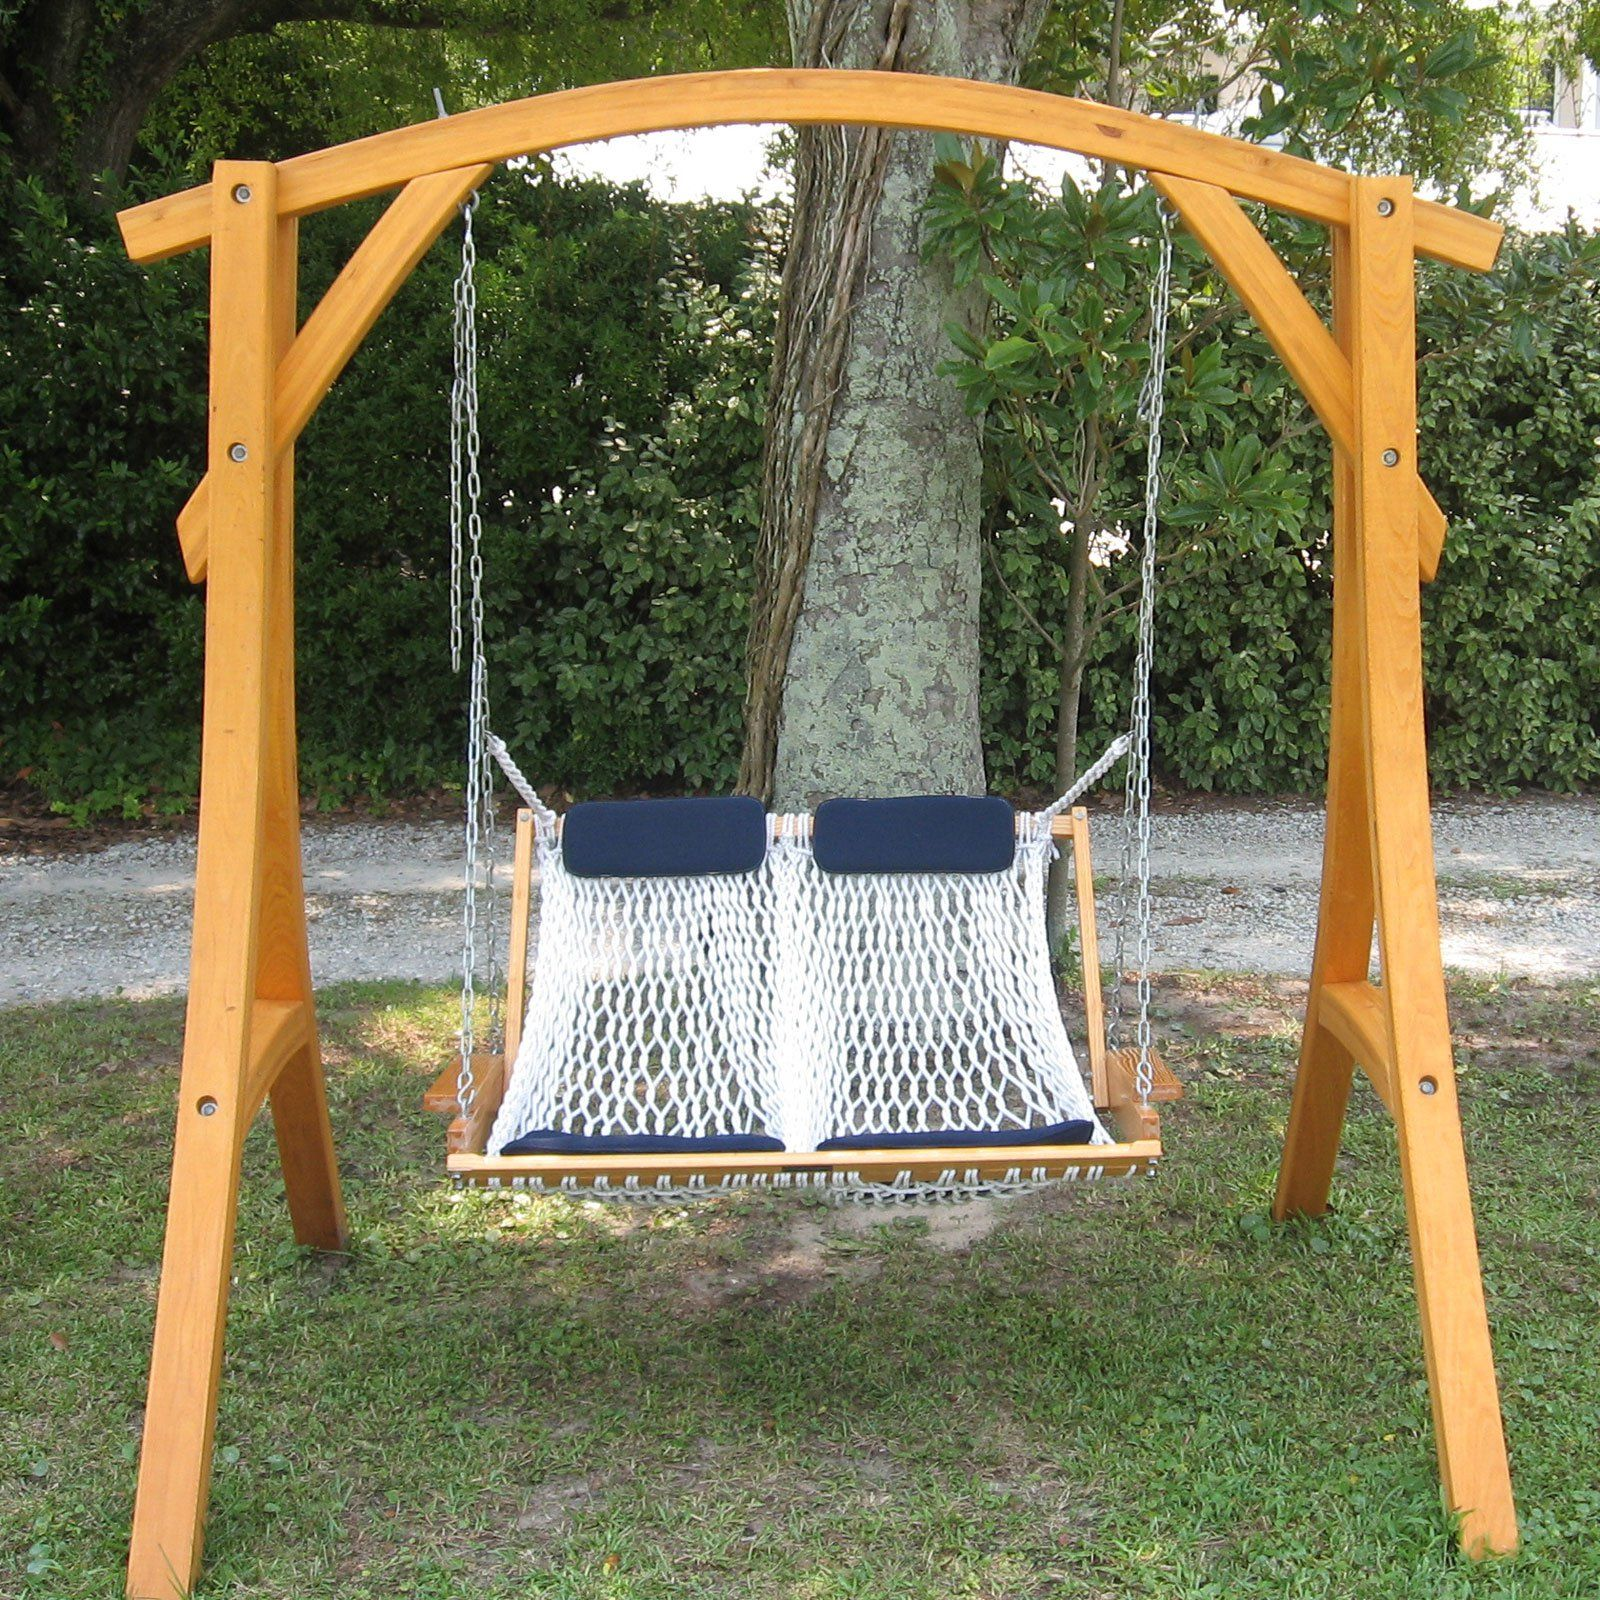 seat diy images outdoor pic hangers rope swing install forngs porchng porch stand banks astonishing steel chair hanging hhswsl clamps with chain hammock along outer for ideas striking double